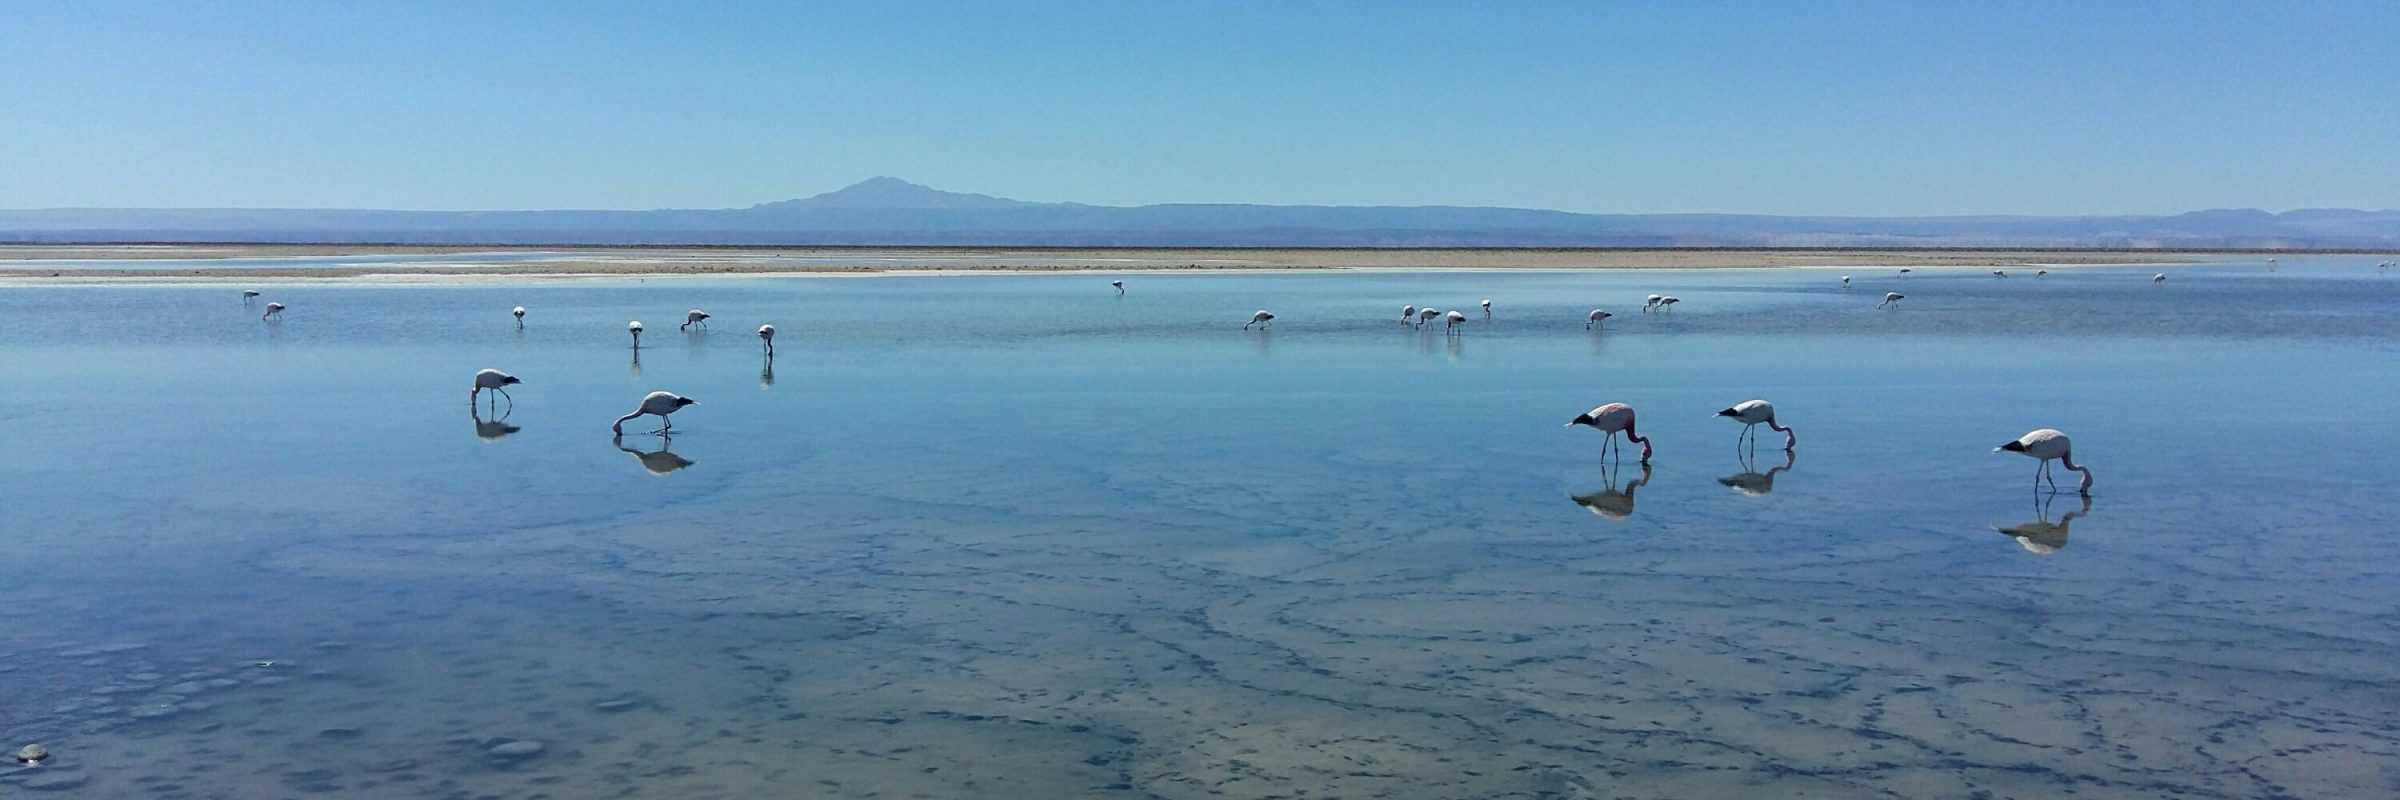 Flamingos in the Atacama Desert, Chile